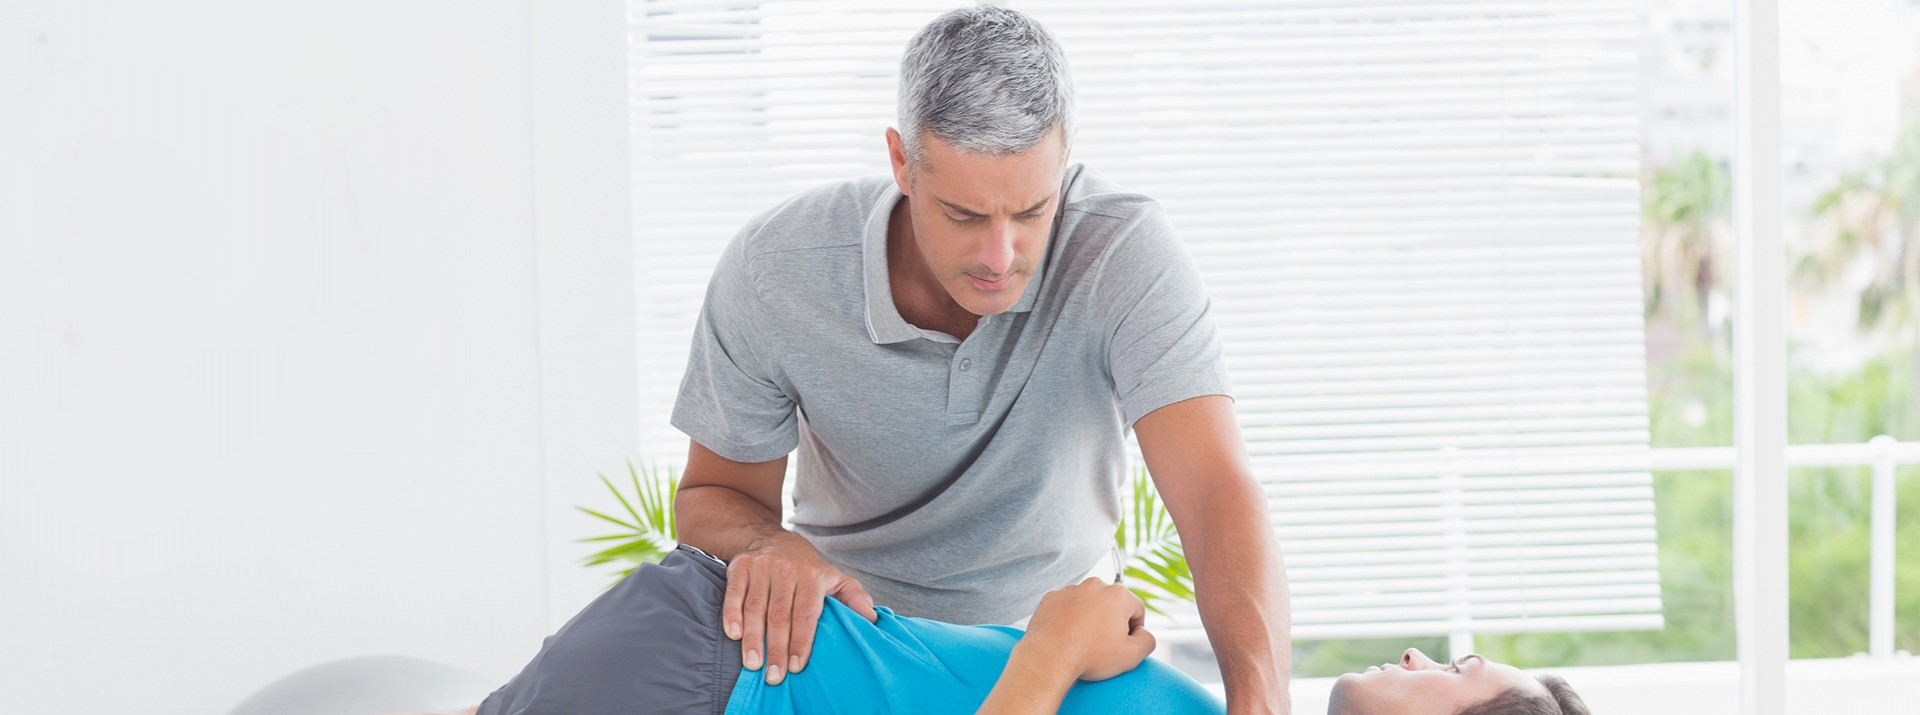 physiotherapy services in mississauga